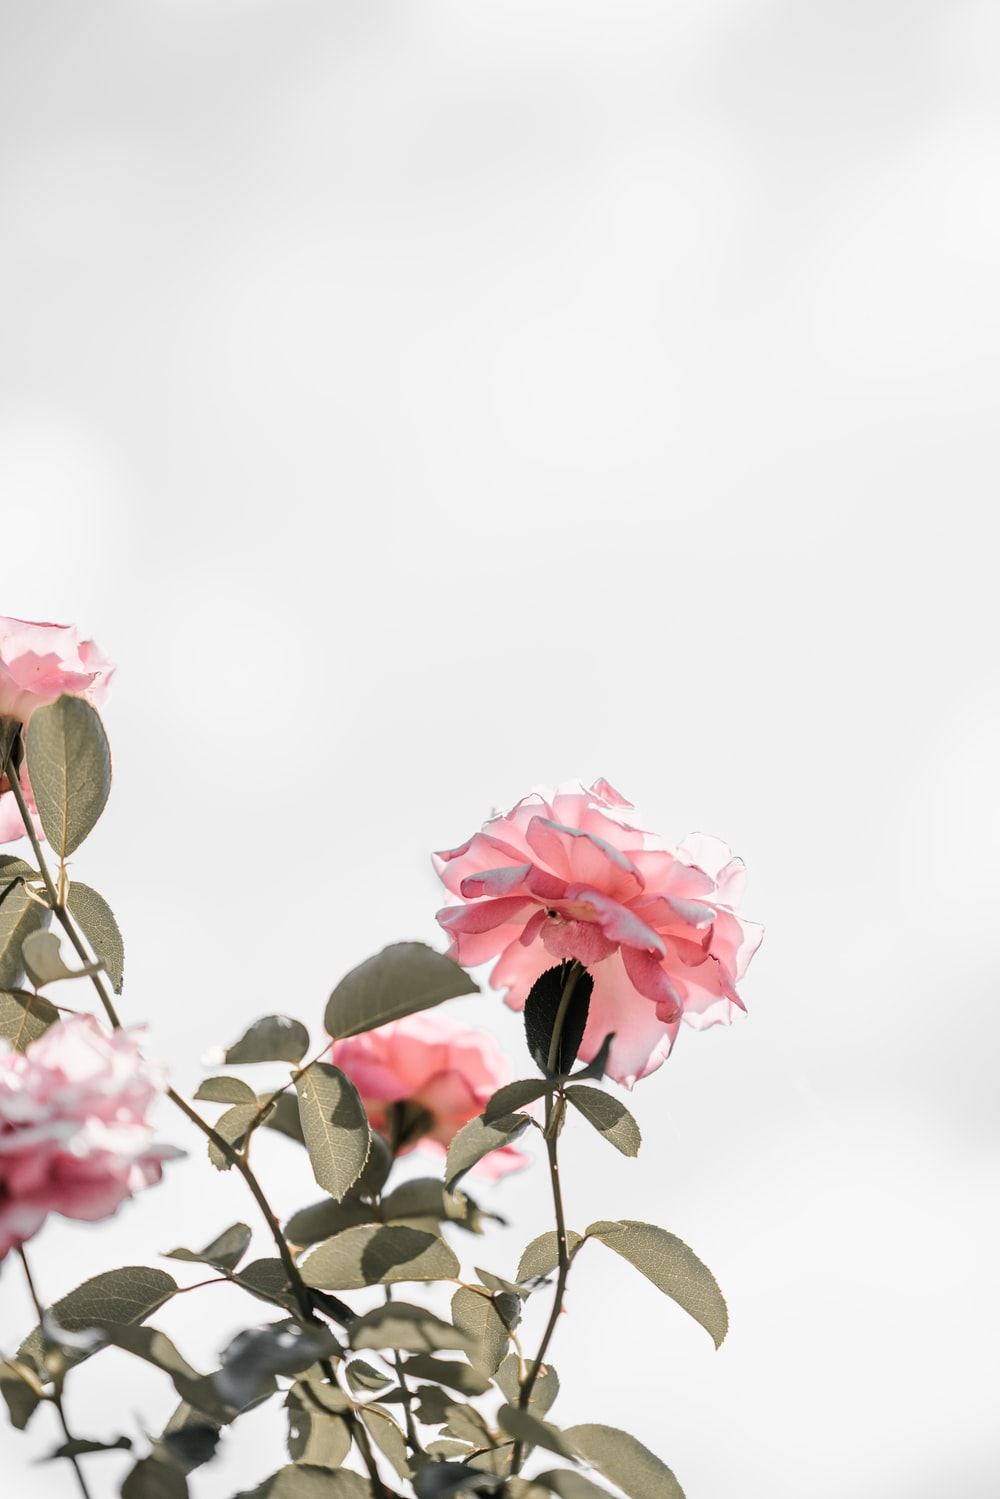 500 Pink Flowers Pictures Hd Download Free Images On Unsplash